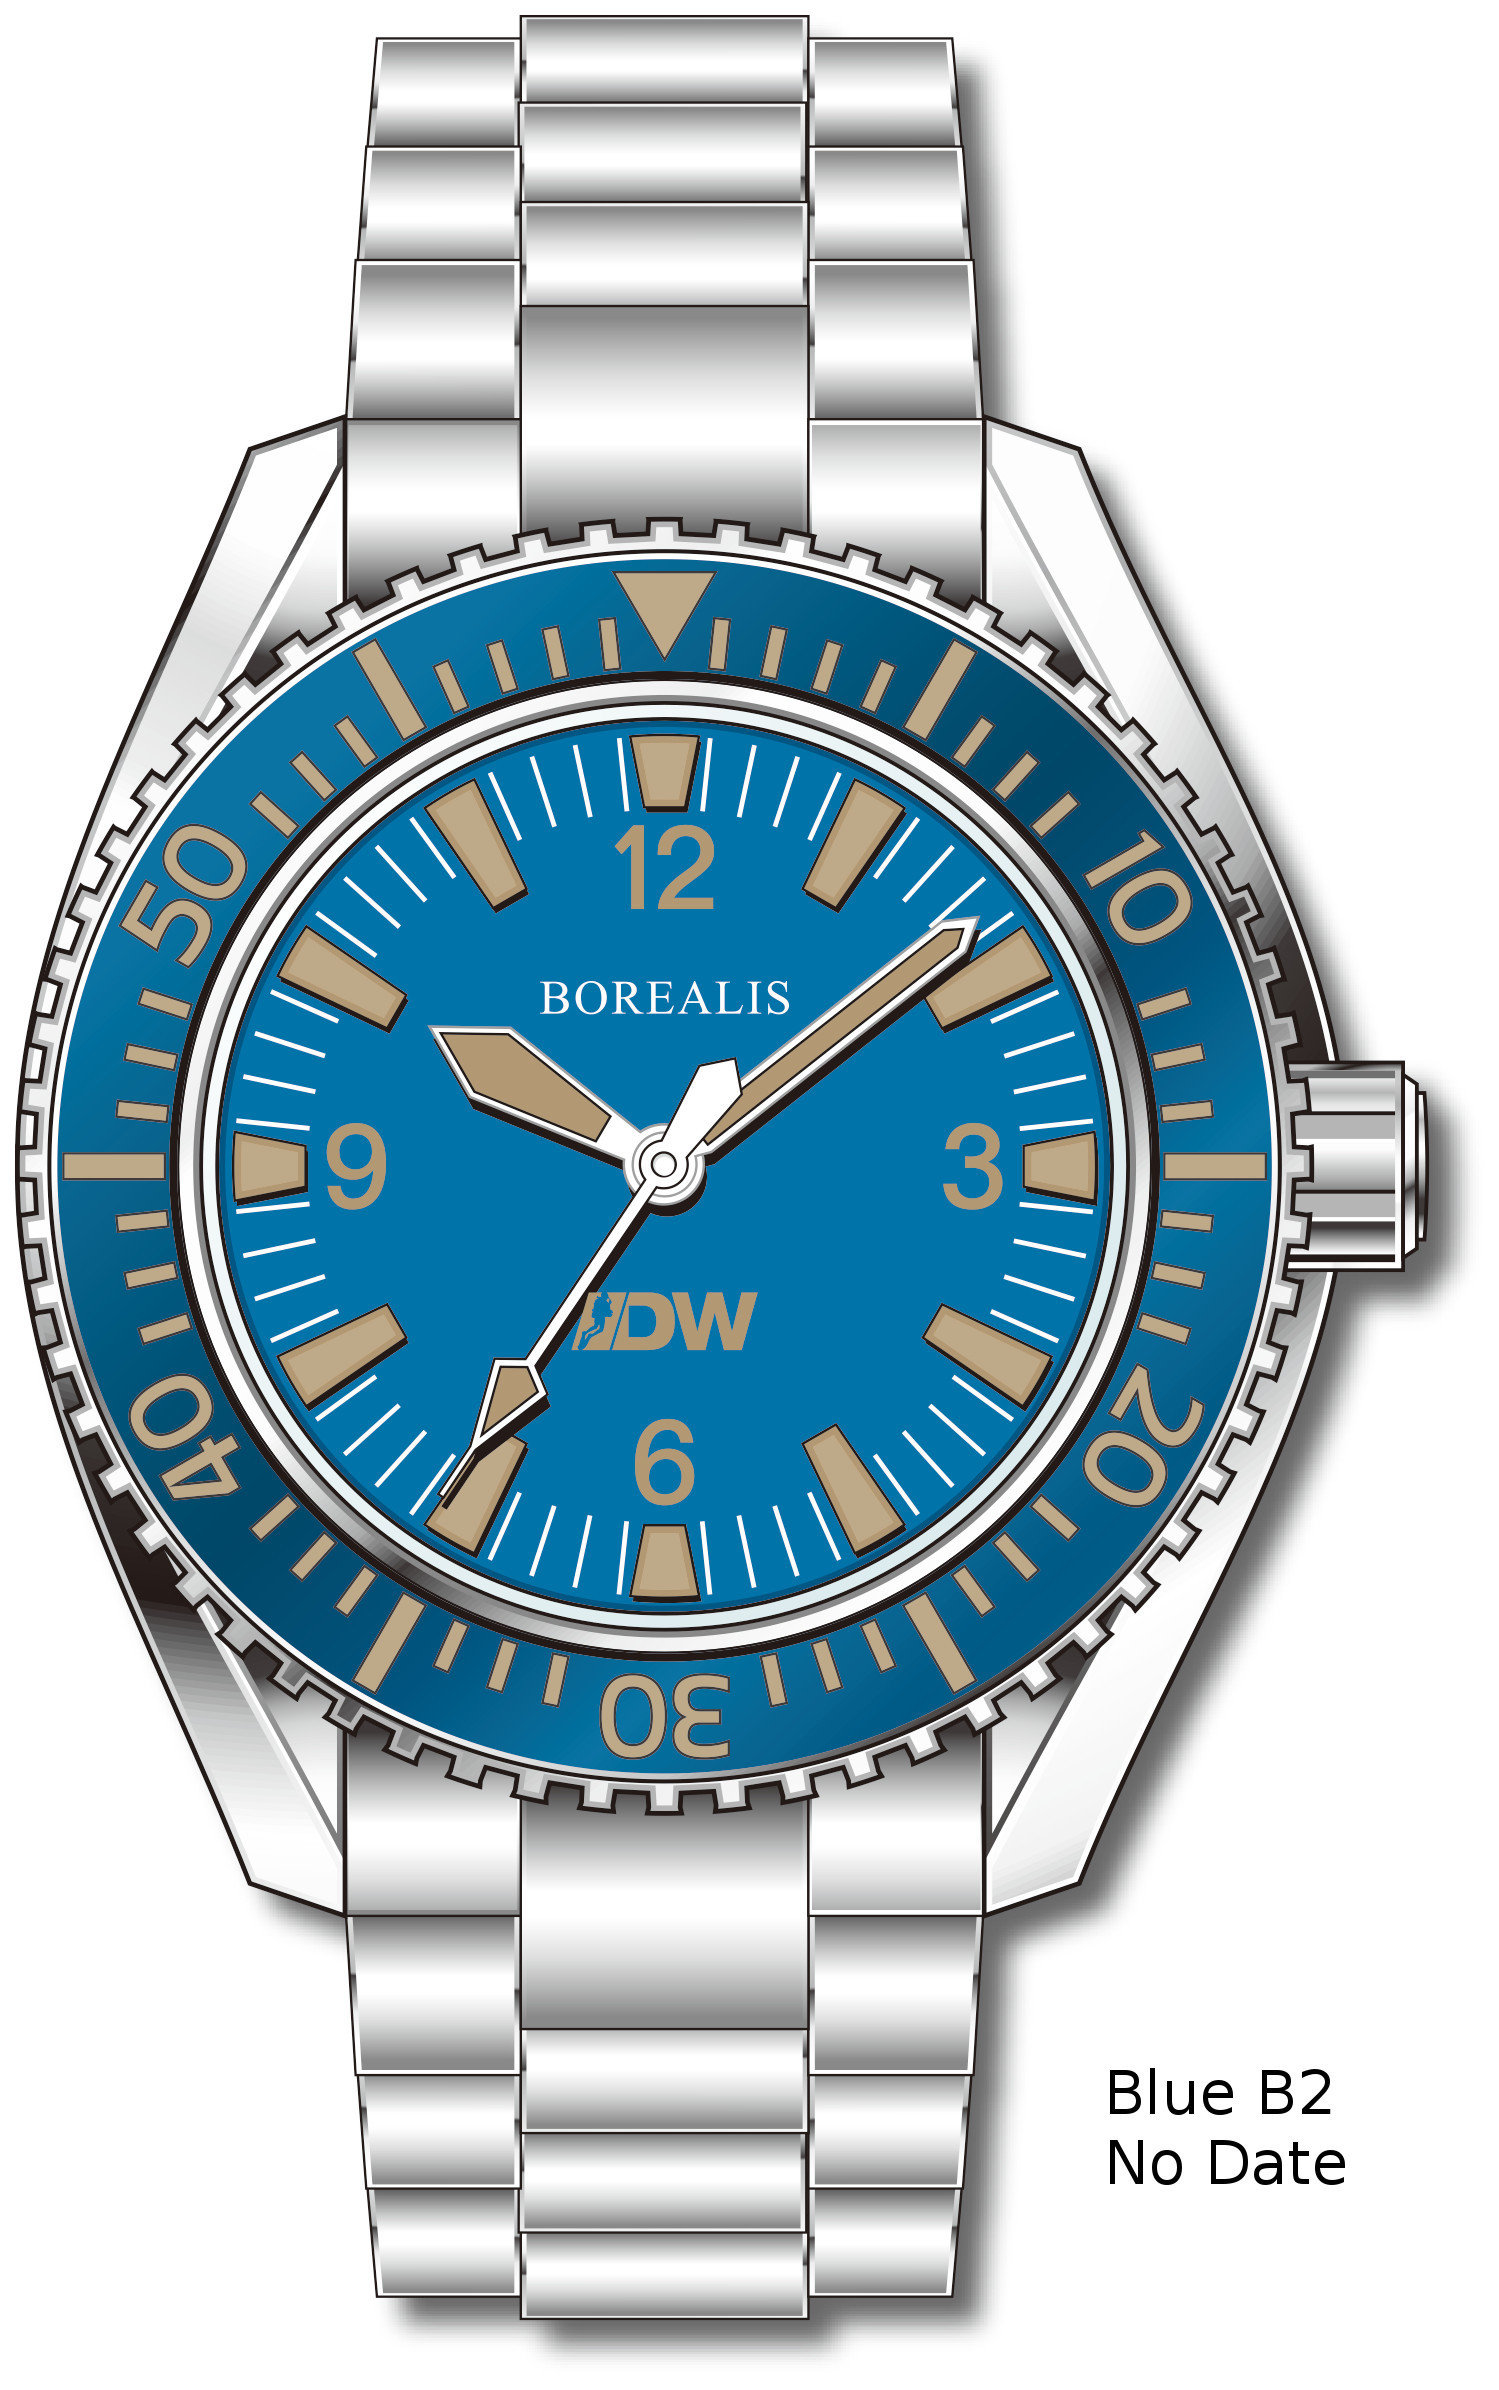 Pre-Order Borealis Estoril 300 for Diver's Watches Facebook Group Blue Dial Arabic Numbers No Date Blue B2 No Date EDWFBGBLUEB2NDT